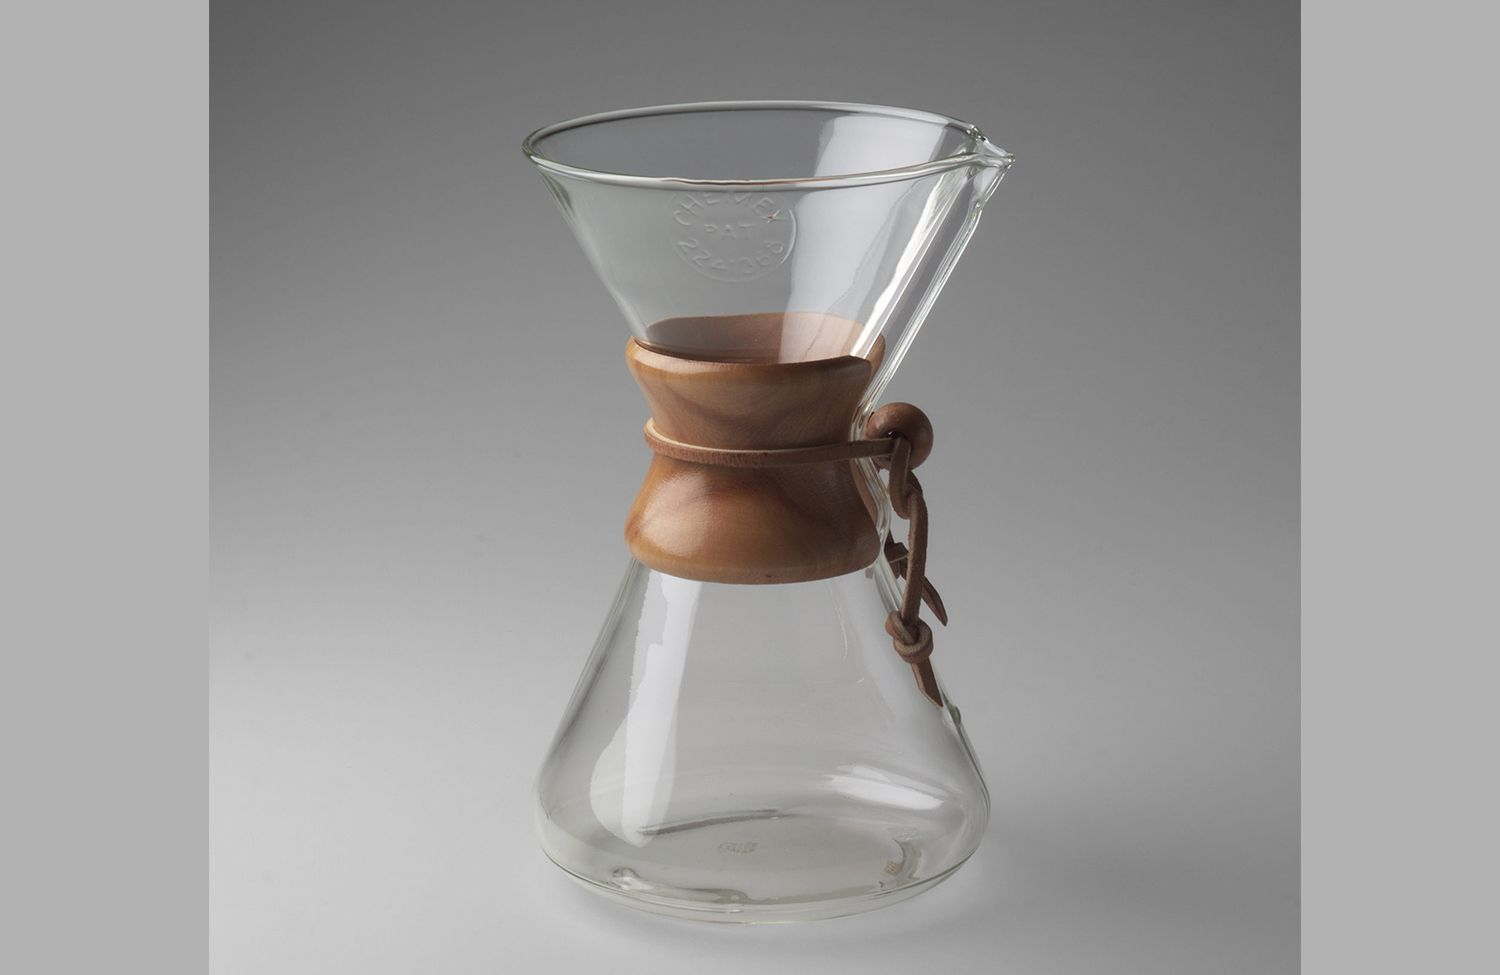 Value of Good Design 1 coffee maker